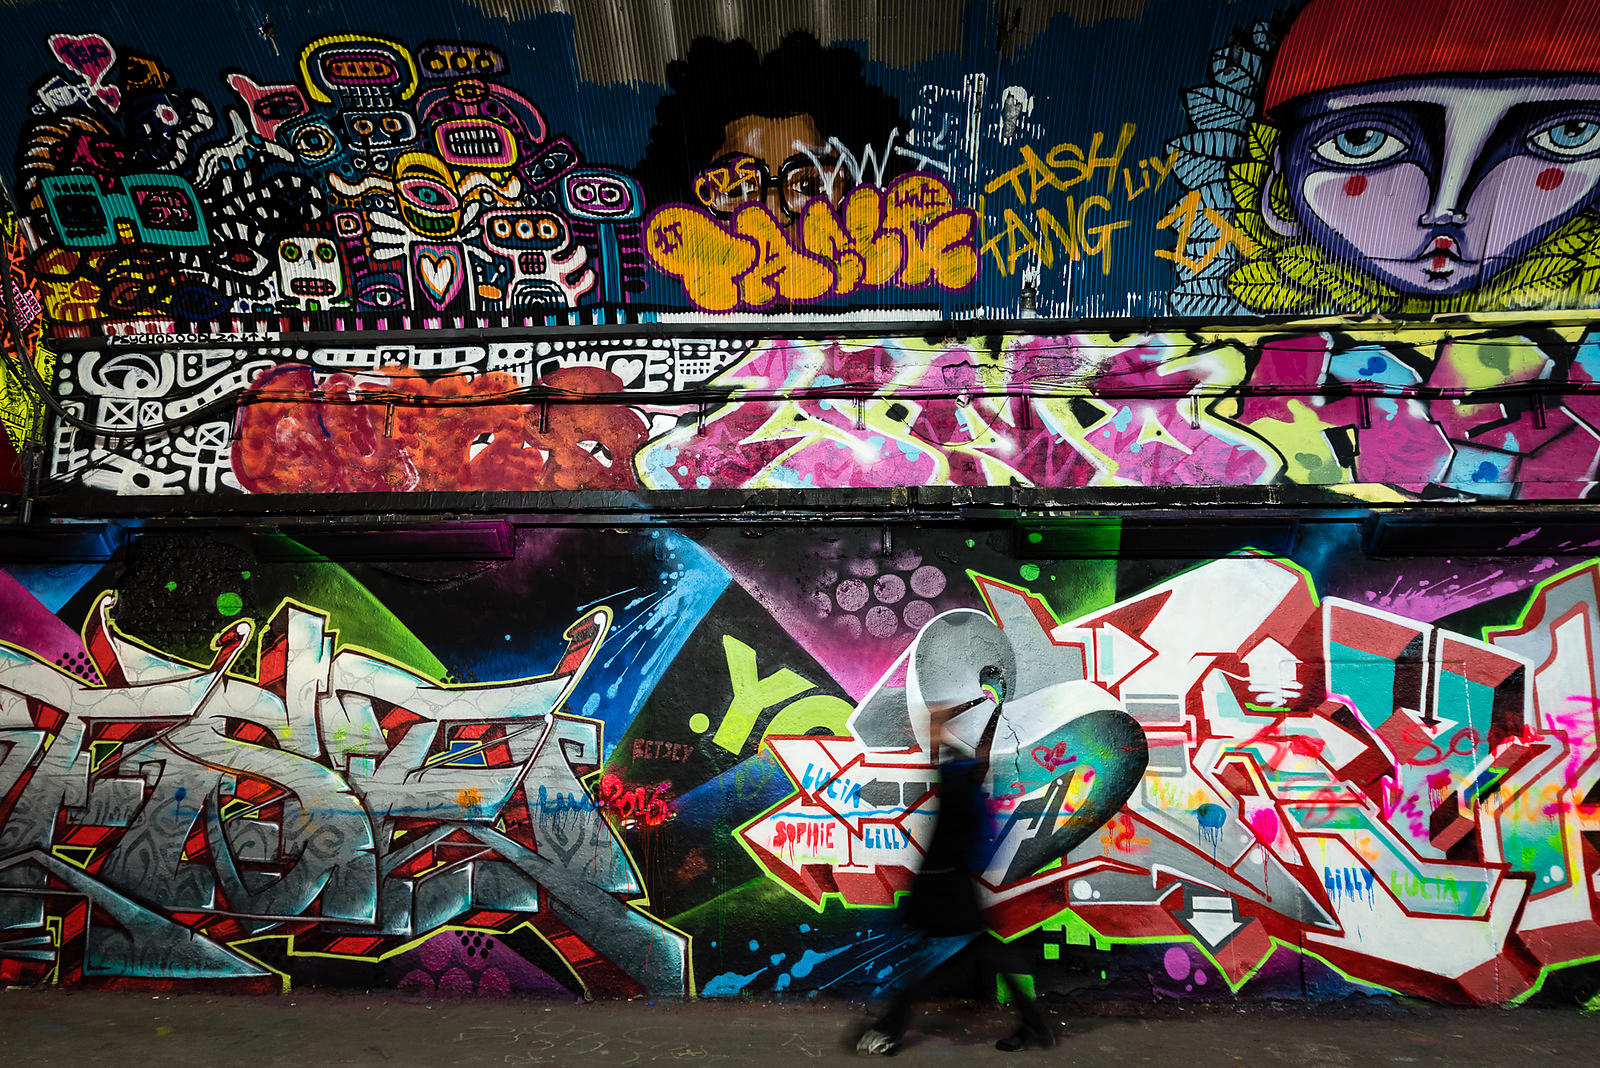 Graffiti & le passant, Tunnel Graffiti, Waterloo Station, London